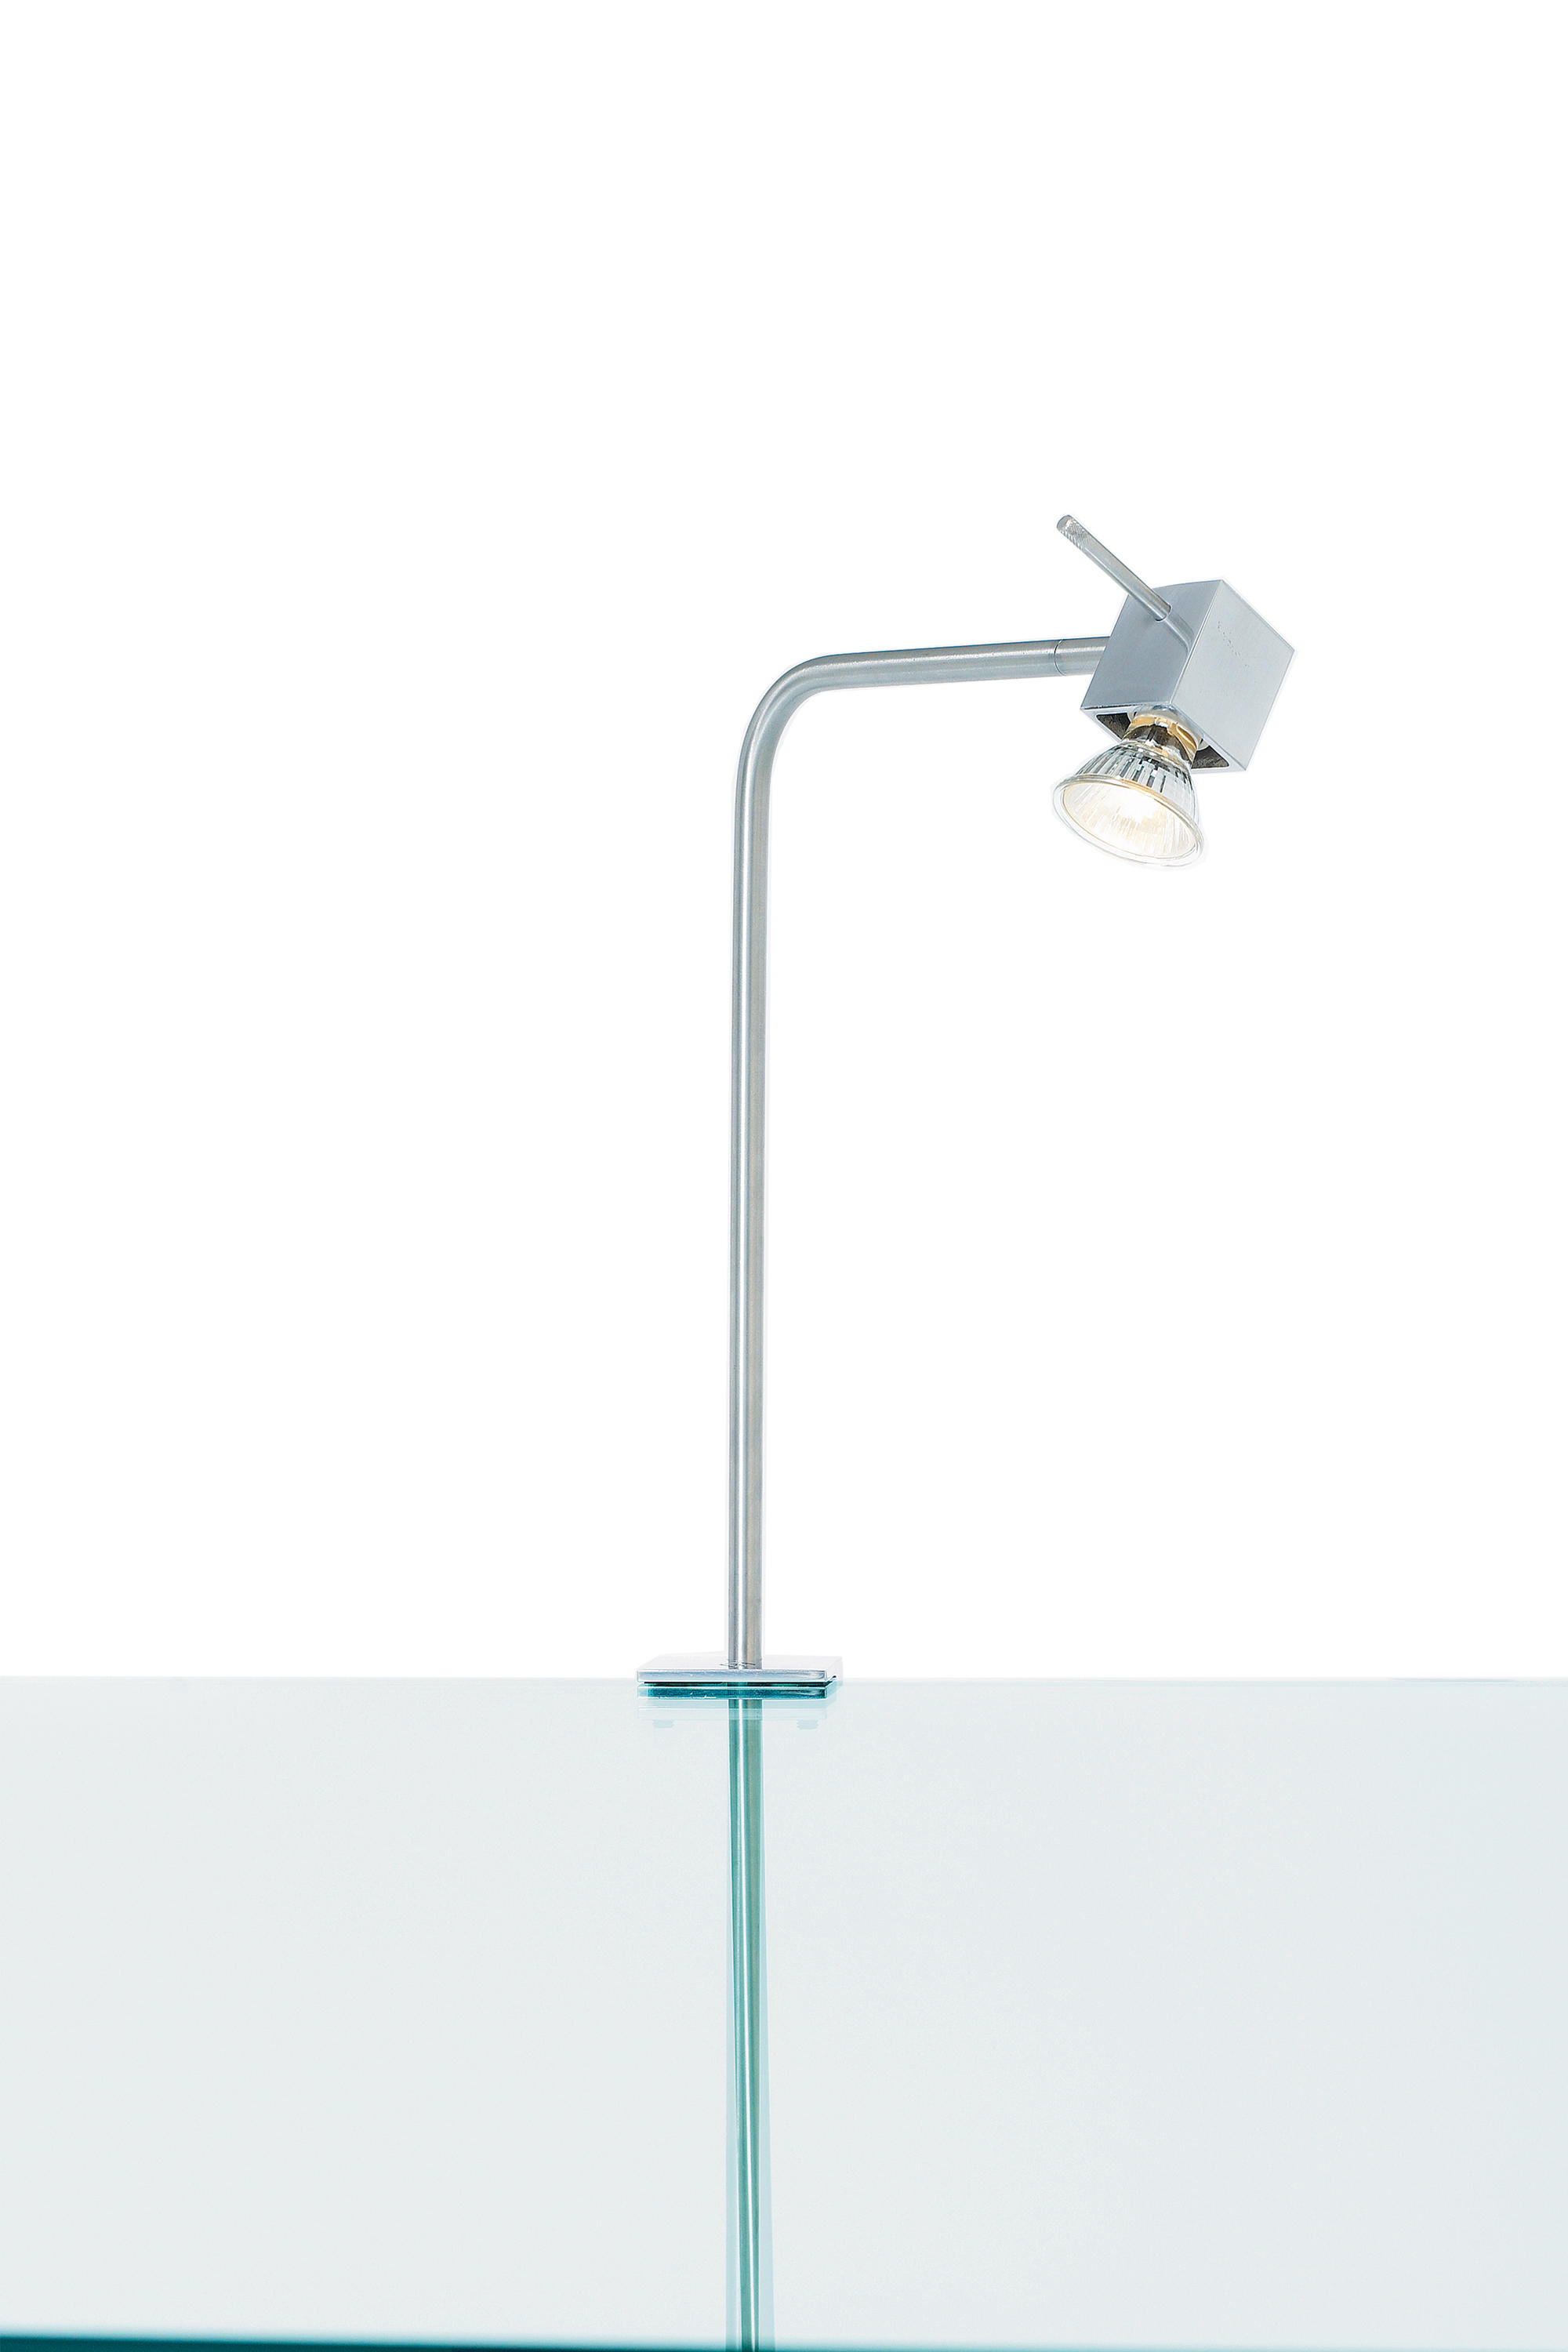 Safari mw11t table lamp general lighting from ghyczy architonic safari mw11t table lamp by ghyczy general lighting geotapseo Image collections